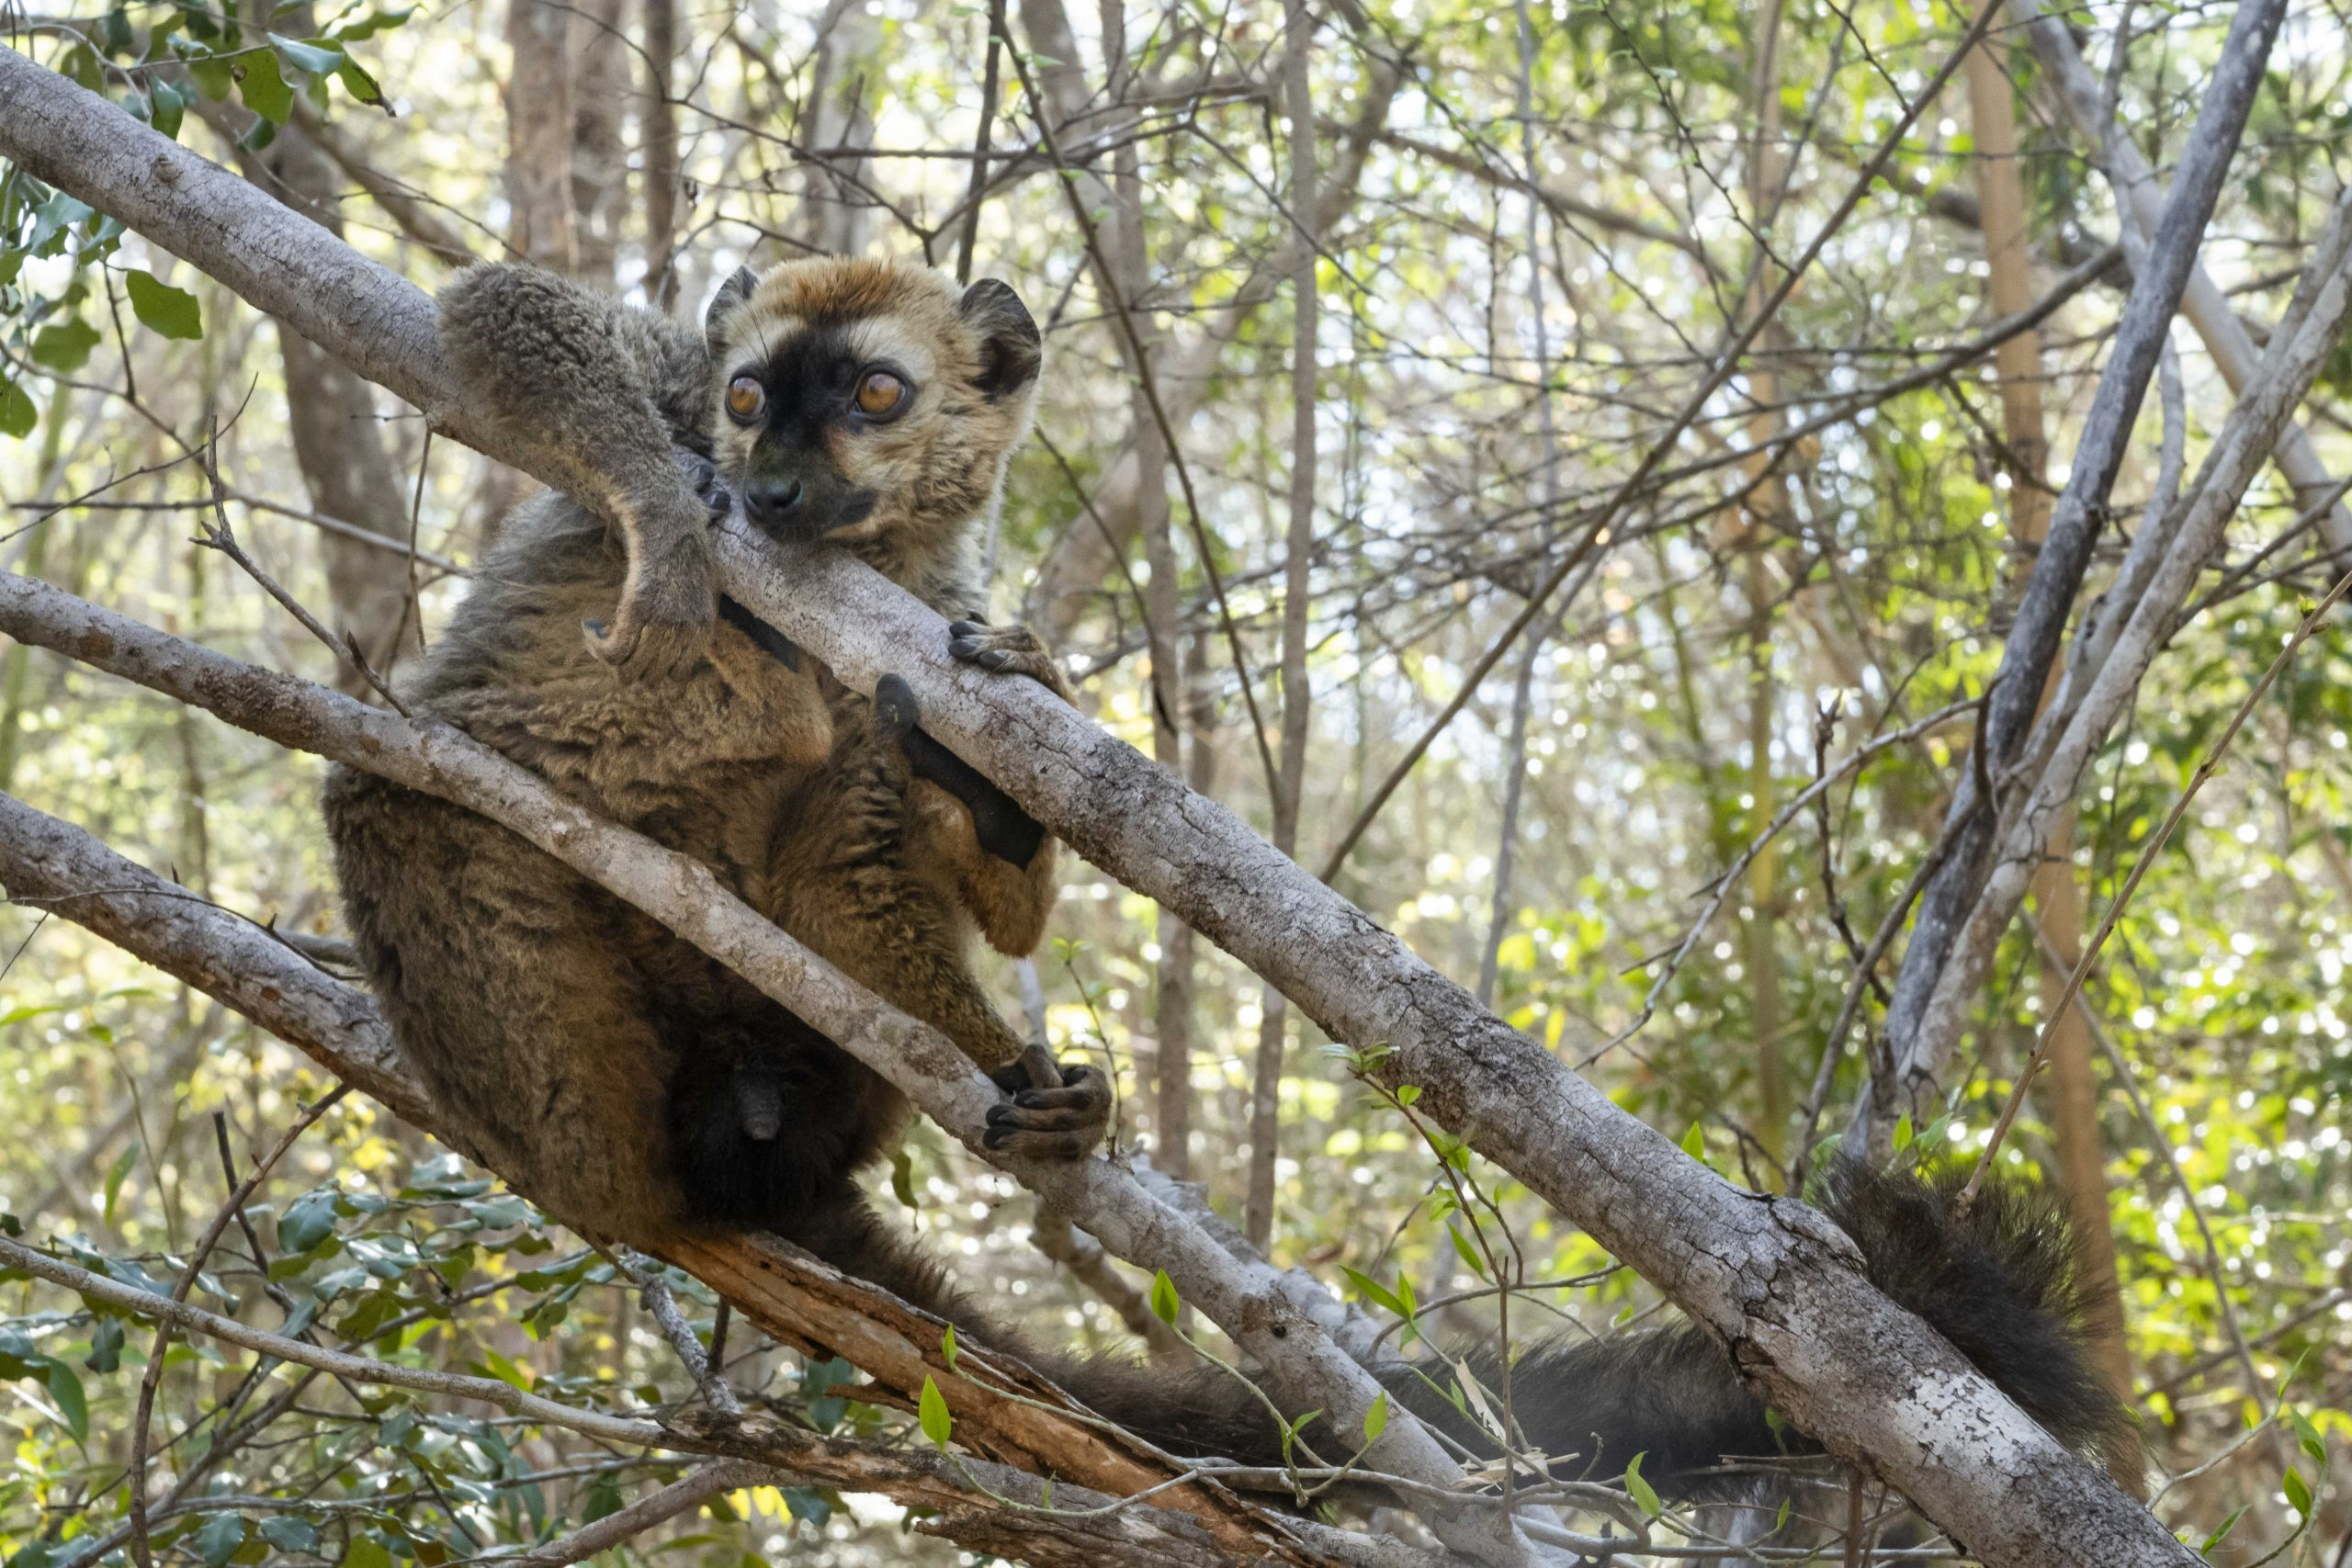 A red-fronted lemur, also known as the red-fronted brown lemur, in Kirindy Forest. Like all lemurs, red-fronted lemurs are endemic to Madagascar.